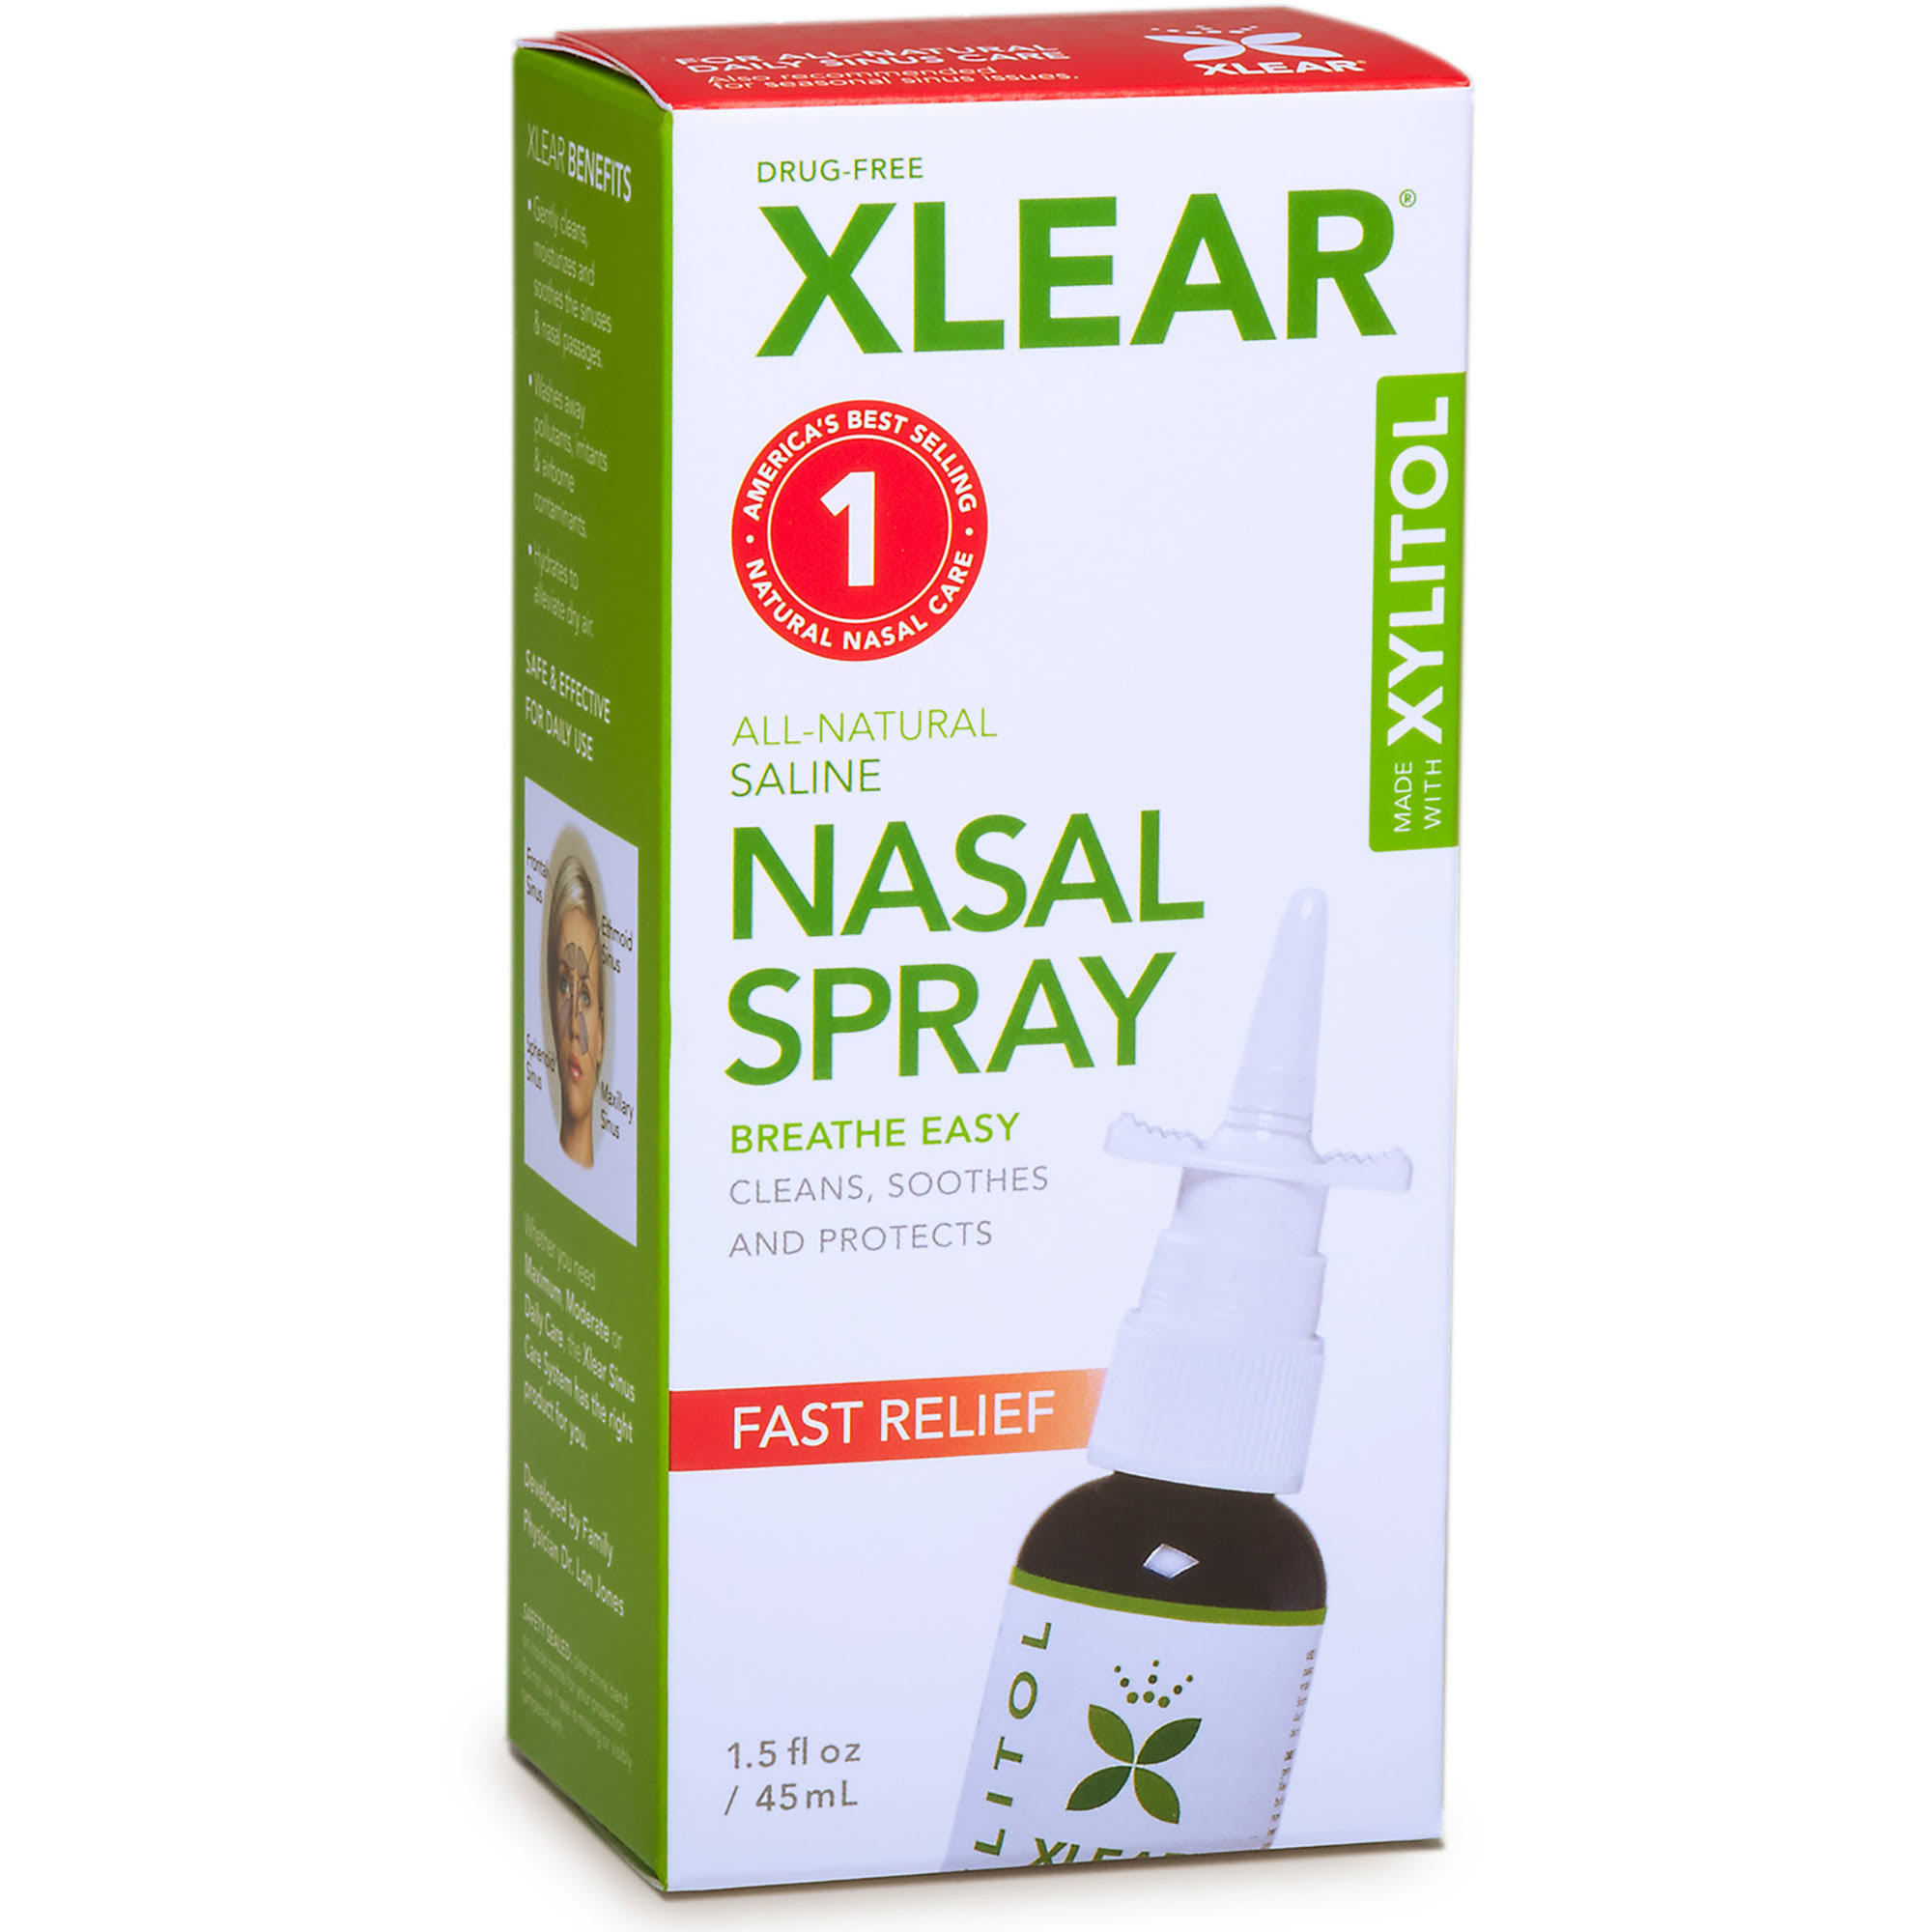 Xlear Natural Saline Nasal Spray - 45ml